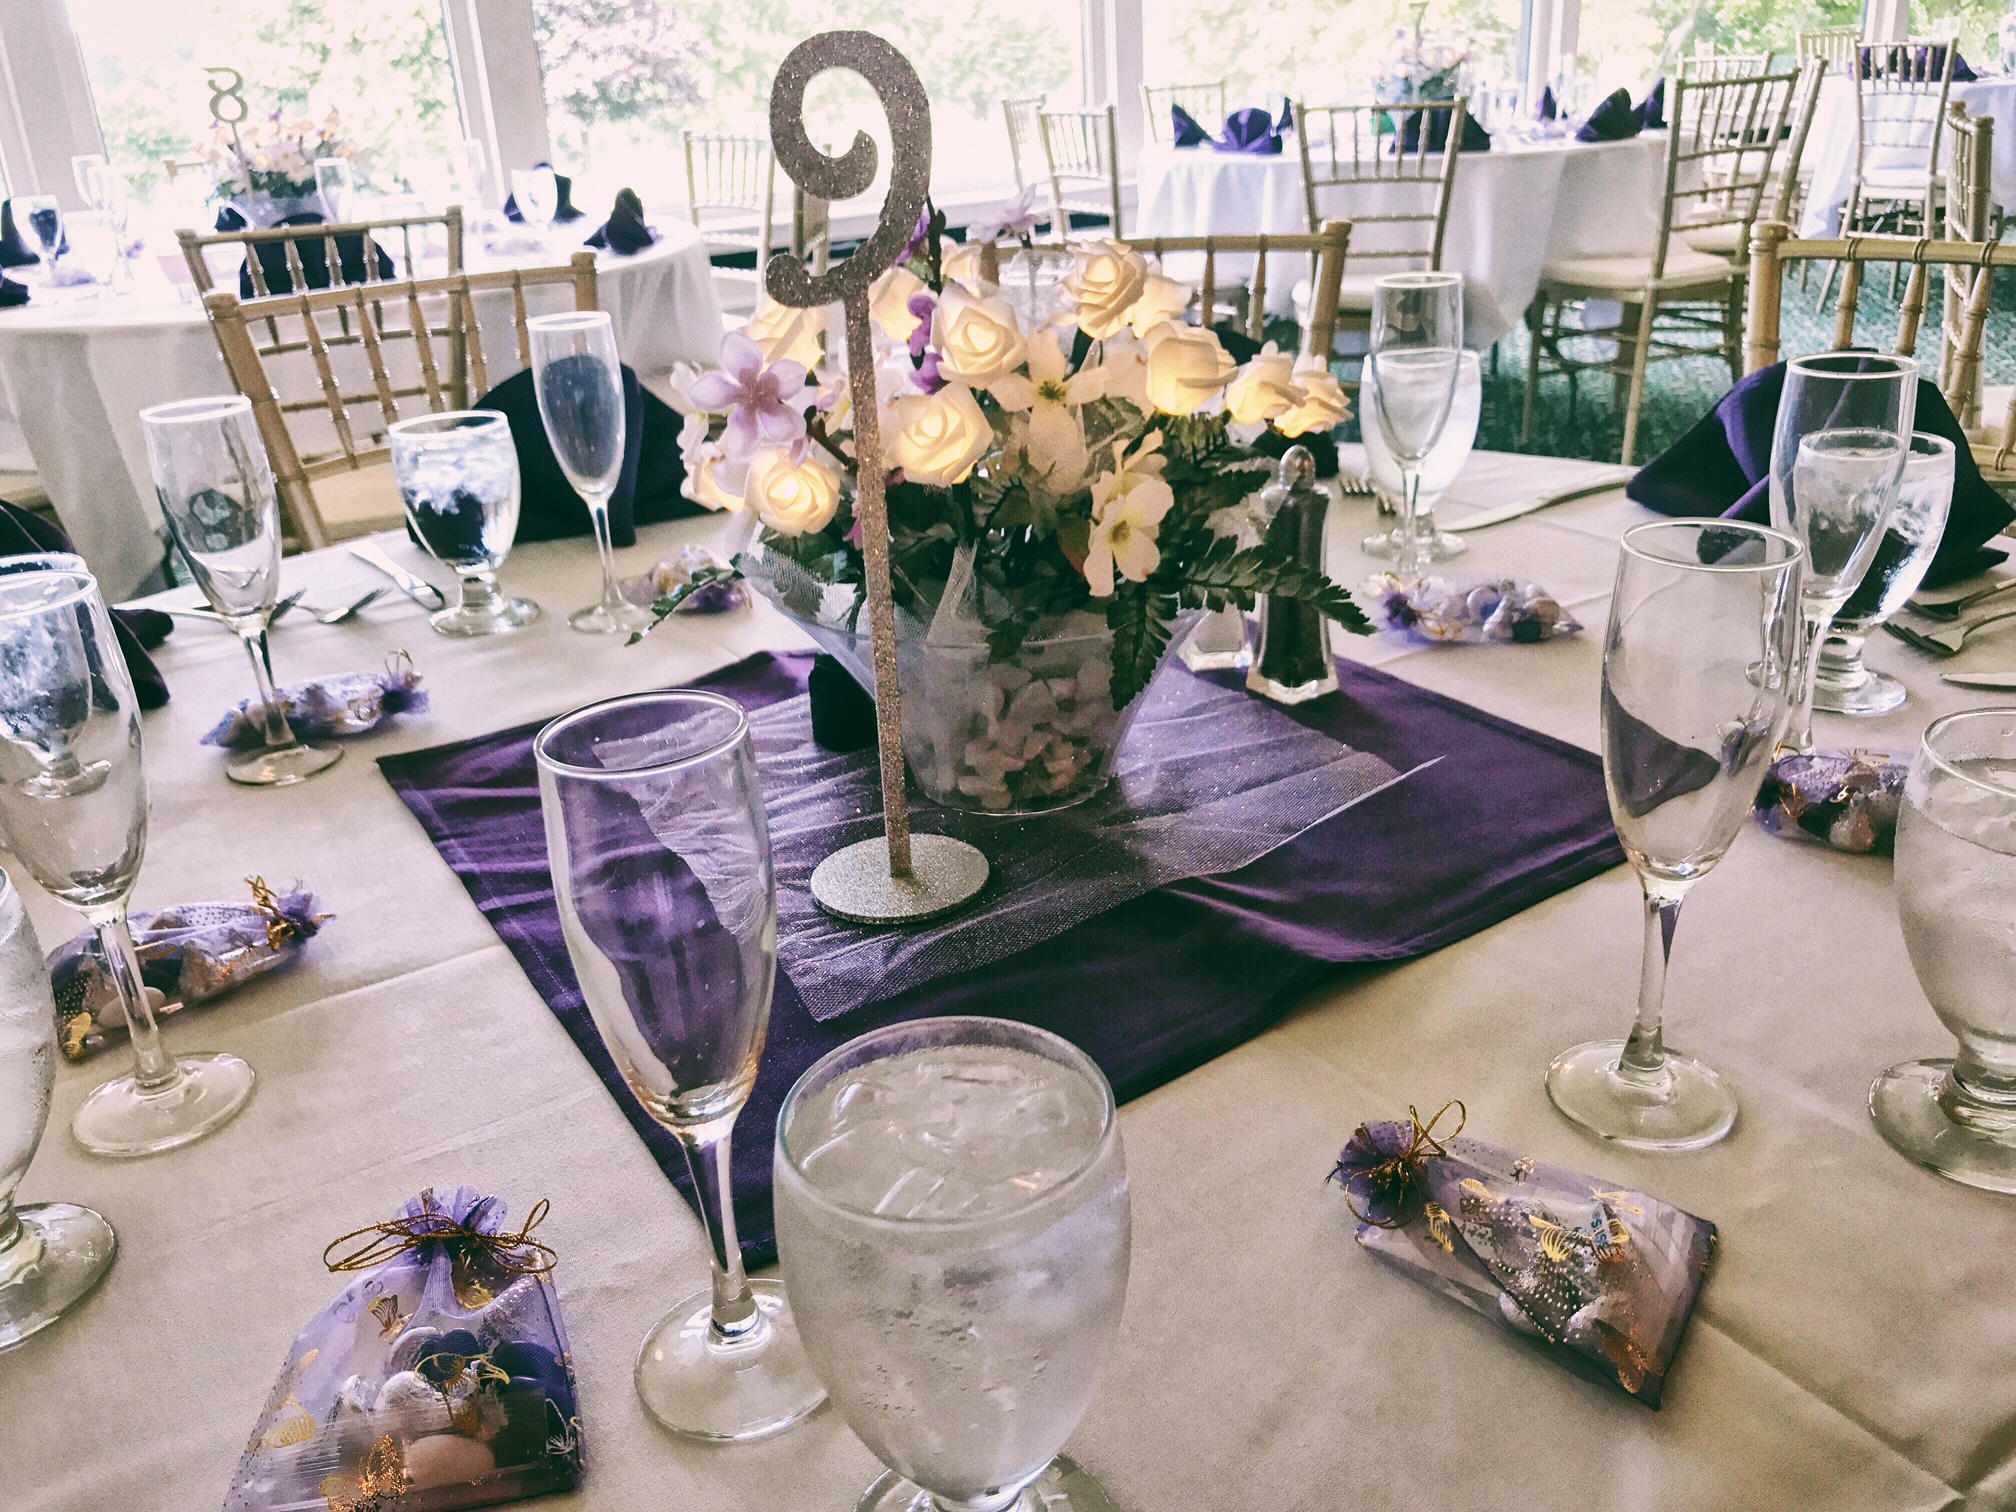 Our Ballroom Can Accommodate Up To 200 People We Have A Large Deck Overlooking Beautiful Golf Course Which Be Used For Ceremonies